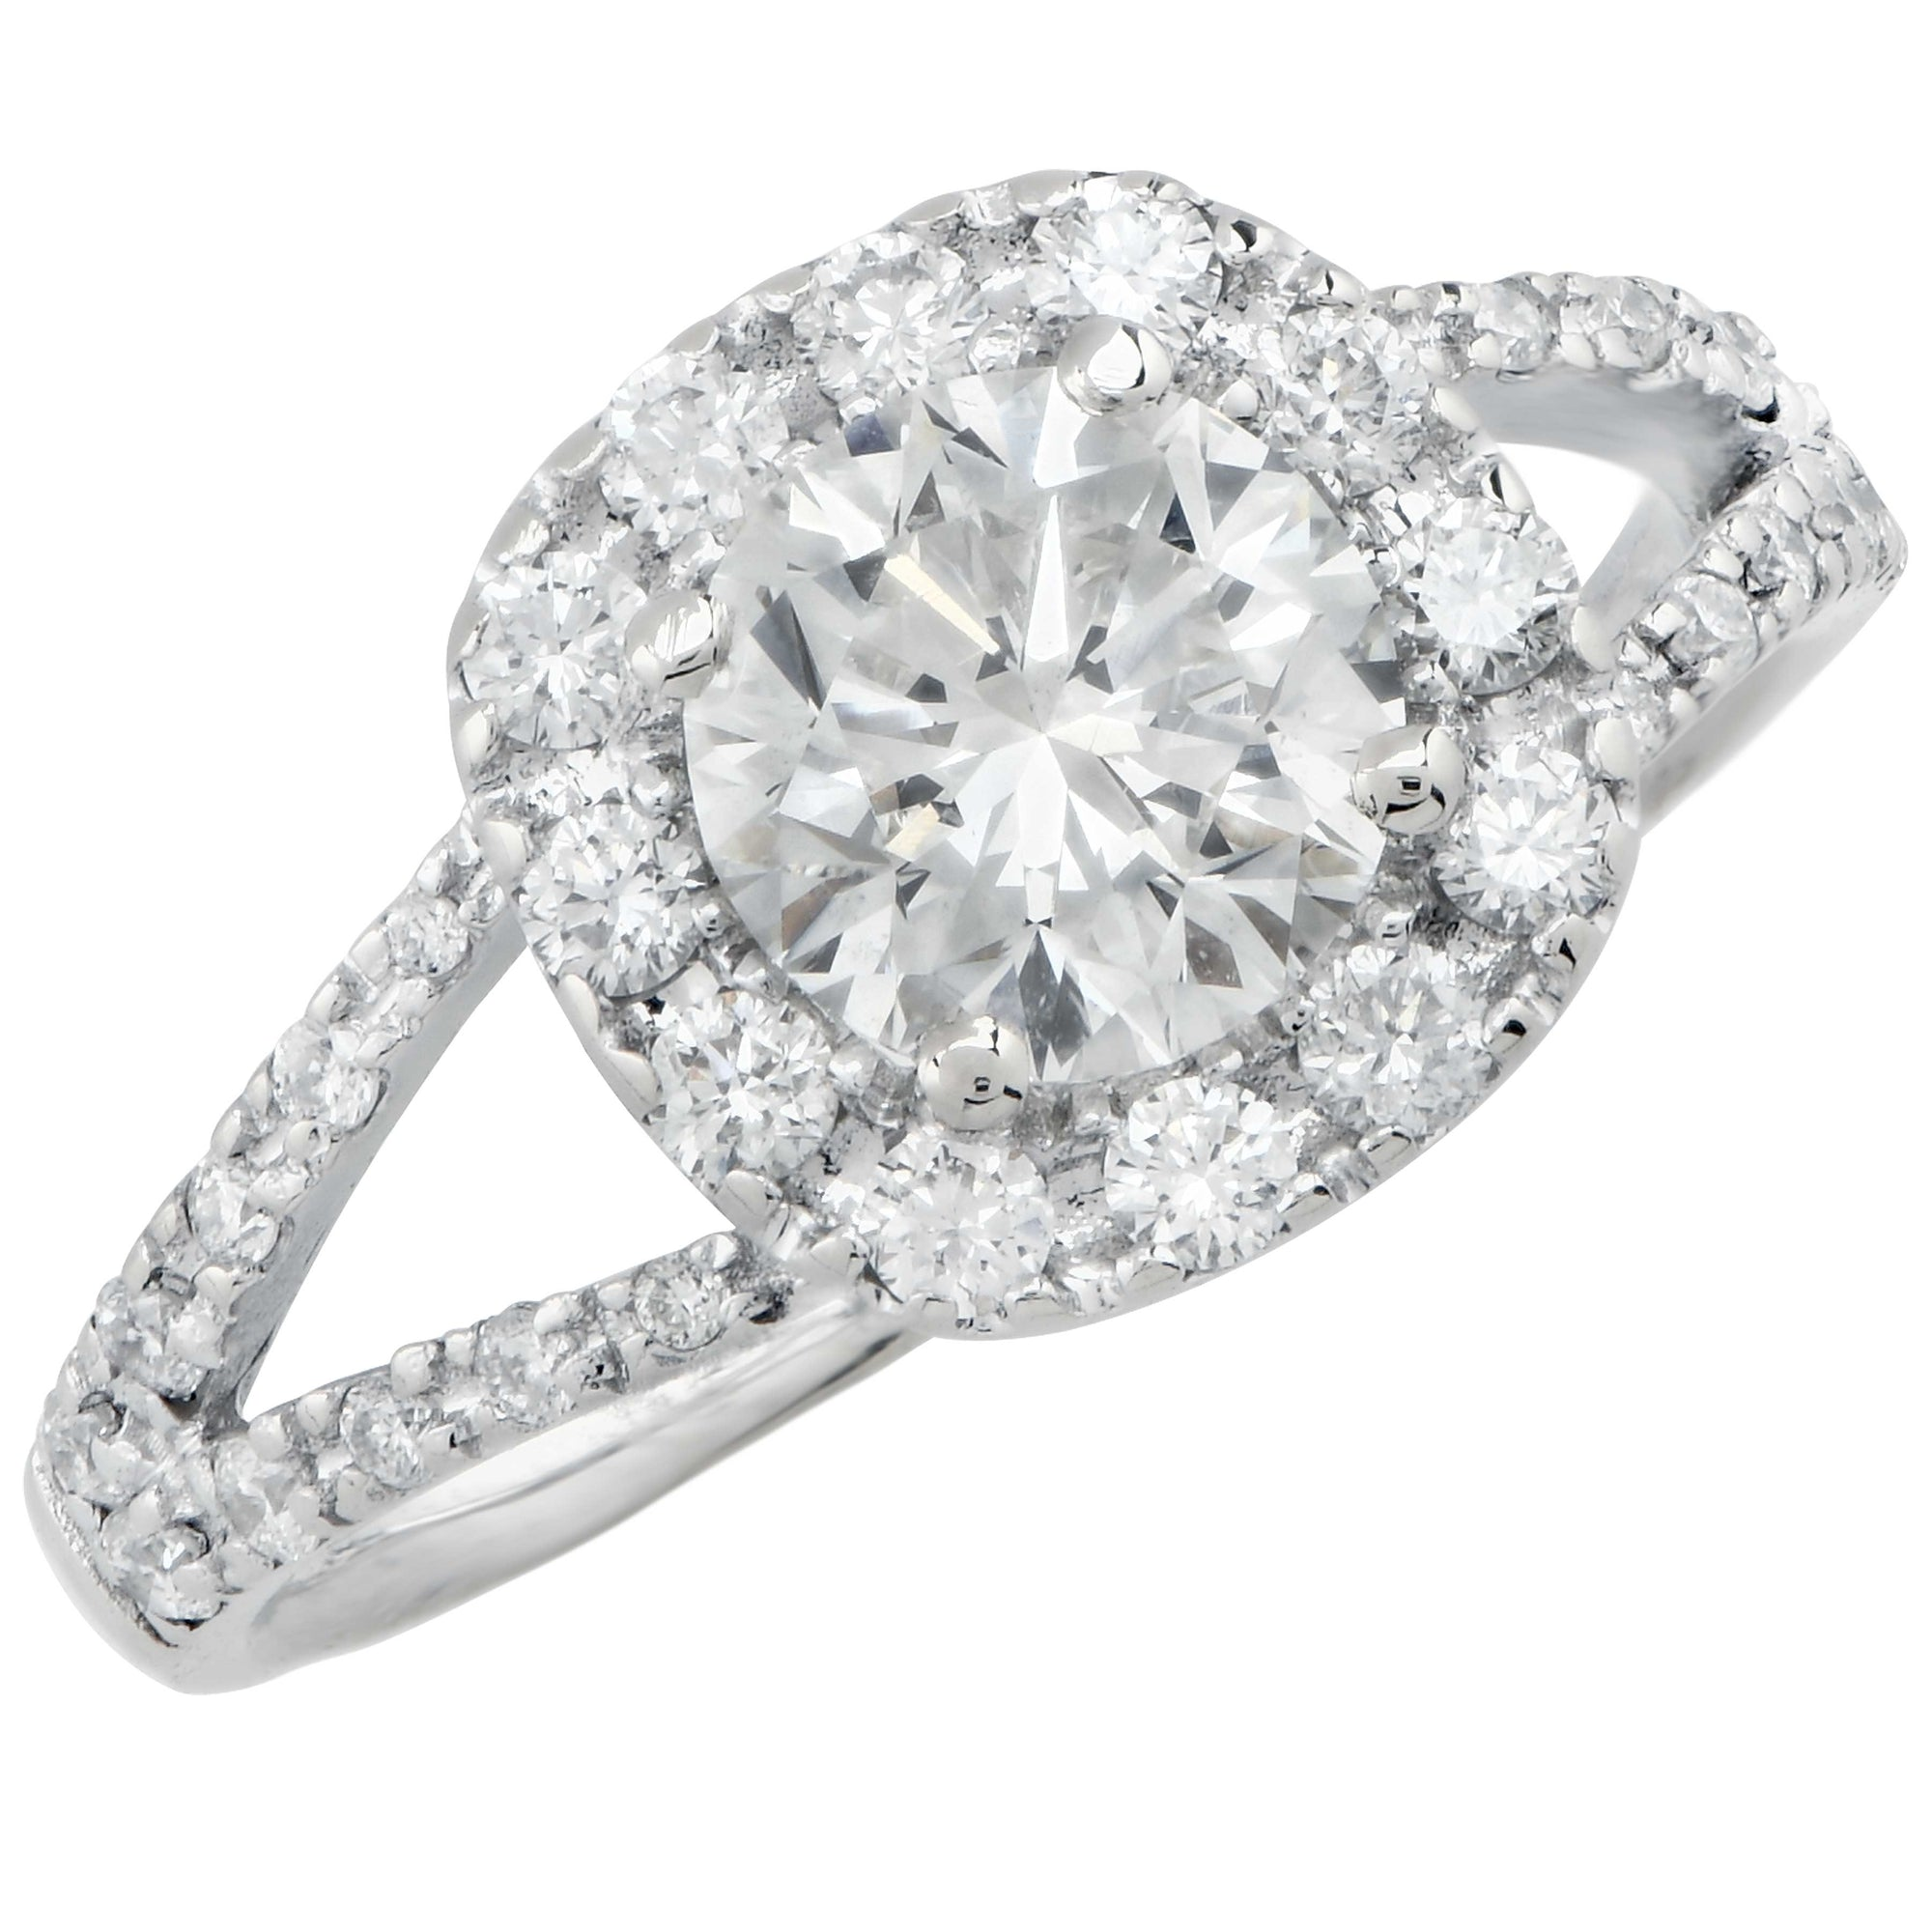 1.01 Carat Round Brilliant Cut GIA Graded J/SI1 18 Karat White Gold Engagement Ring